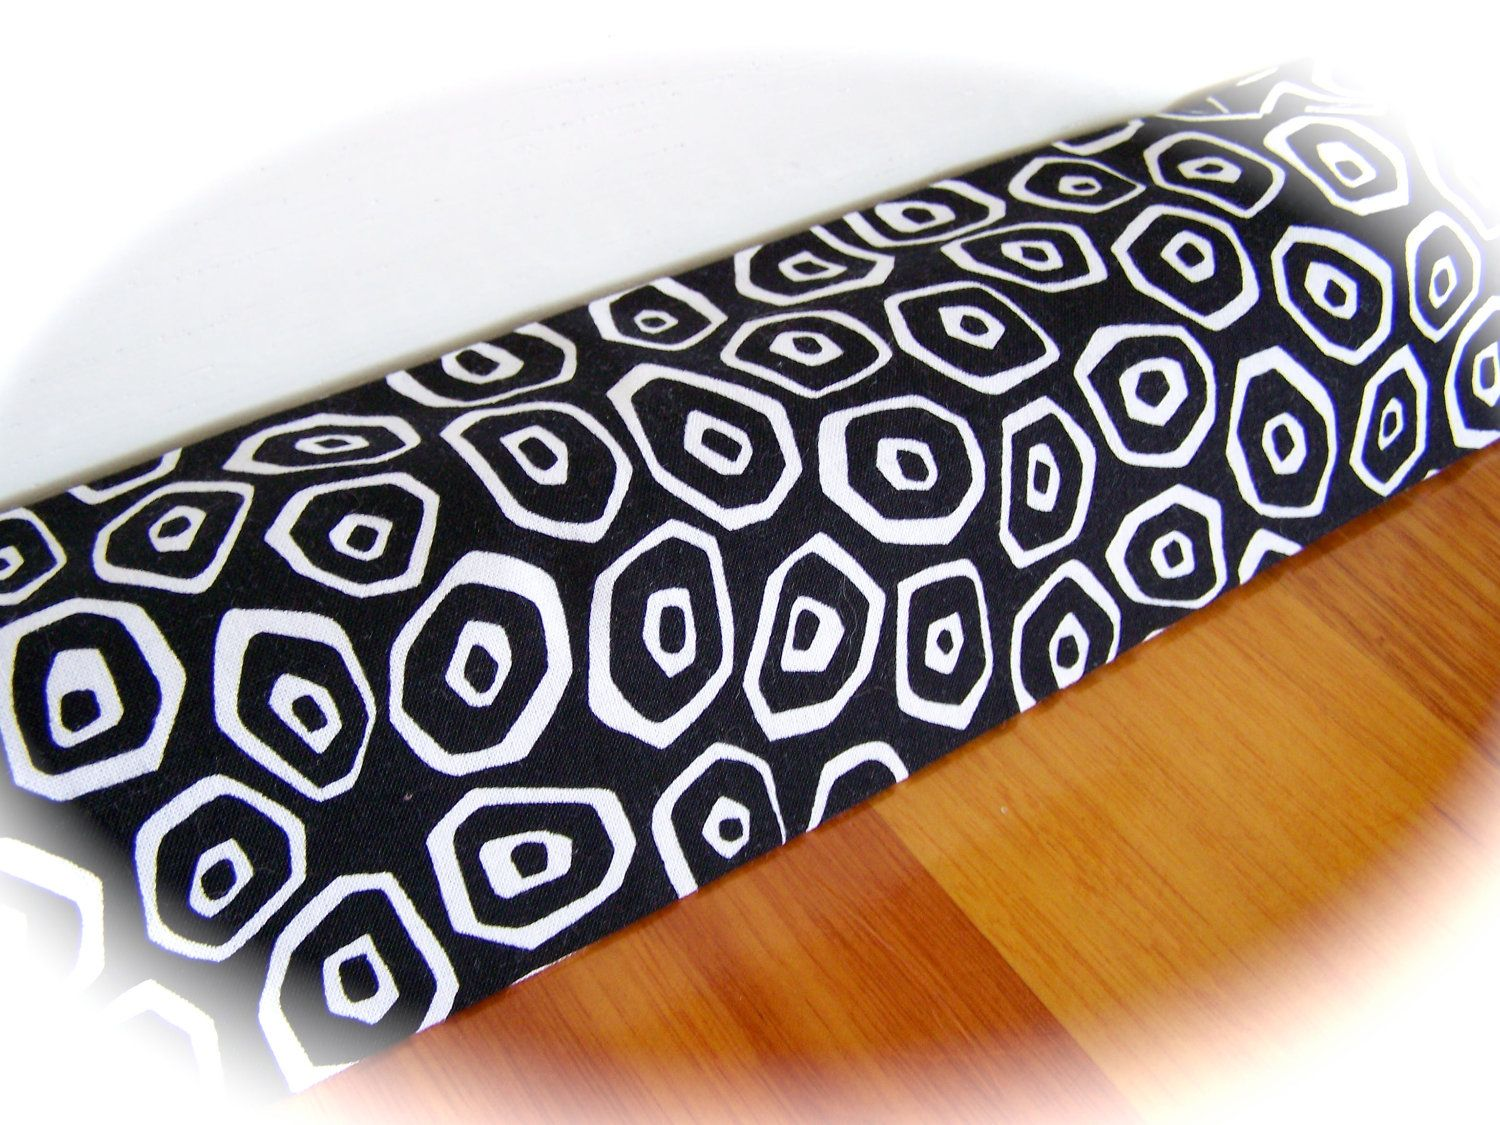 Draft Stopper, Draught Excluder, door snake, sausage, NEW Cover for kitchen door. - Black and white circles. $11.50, via Etsy.